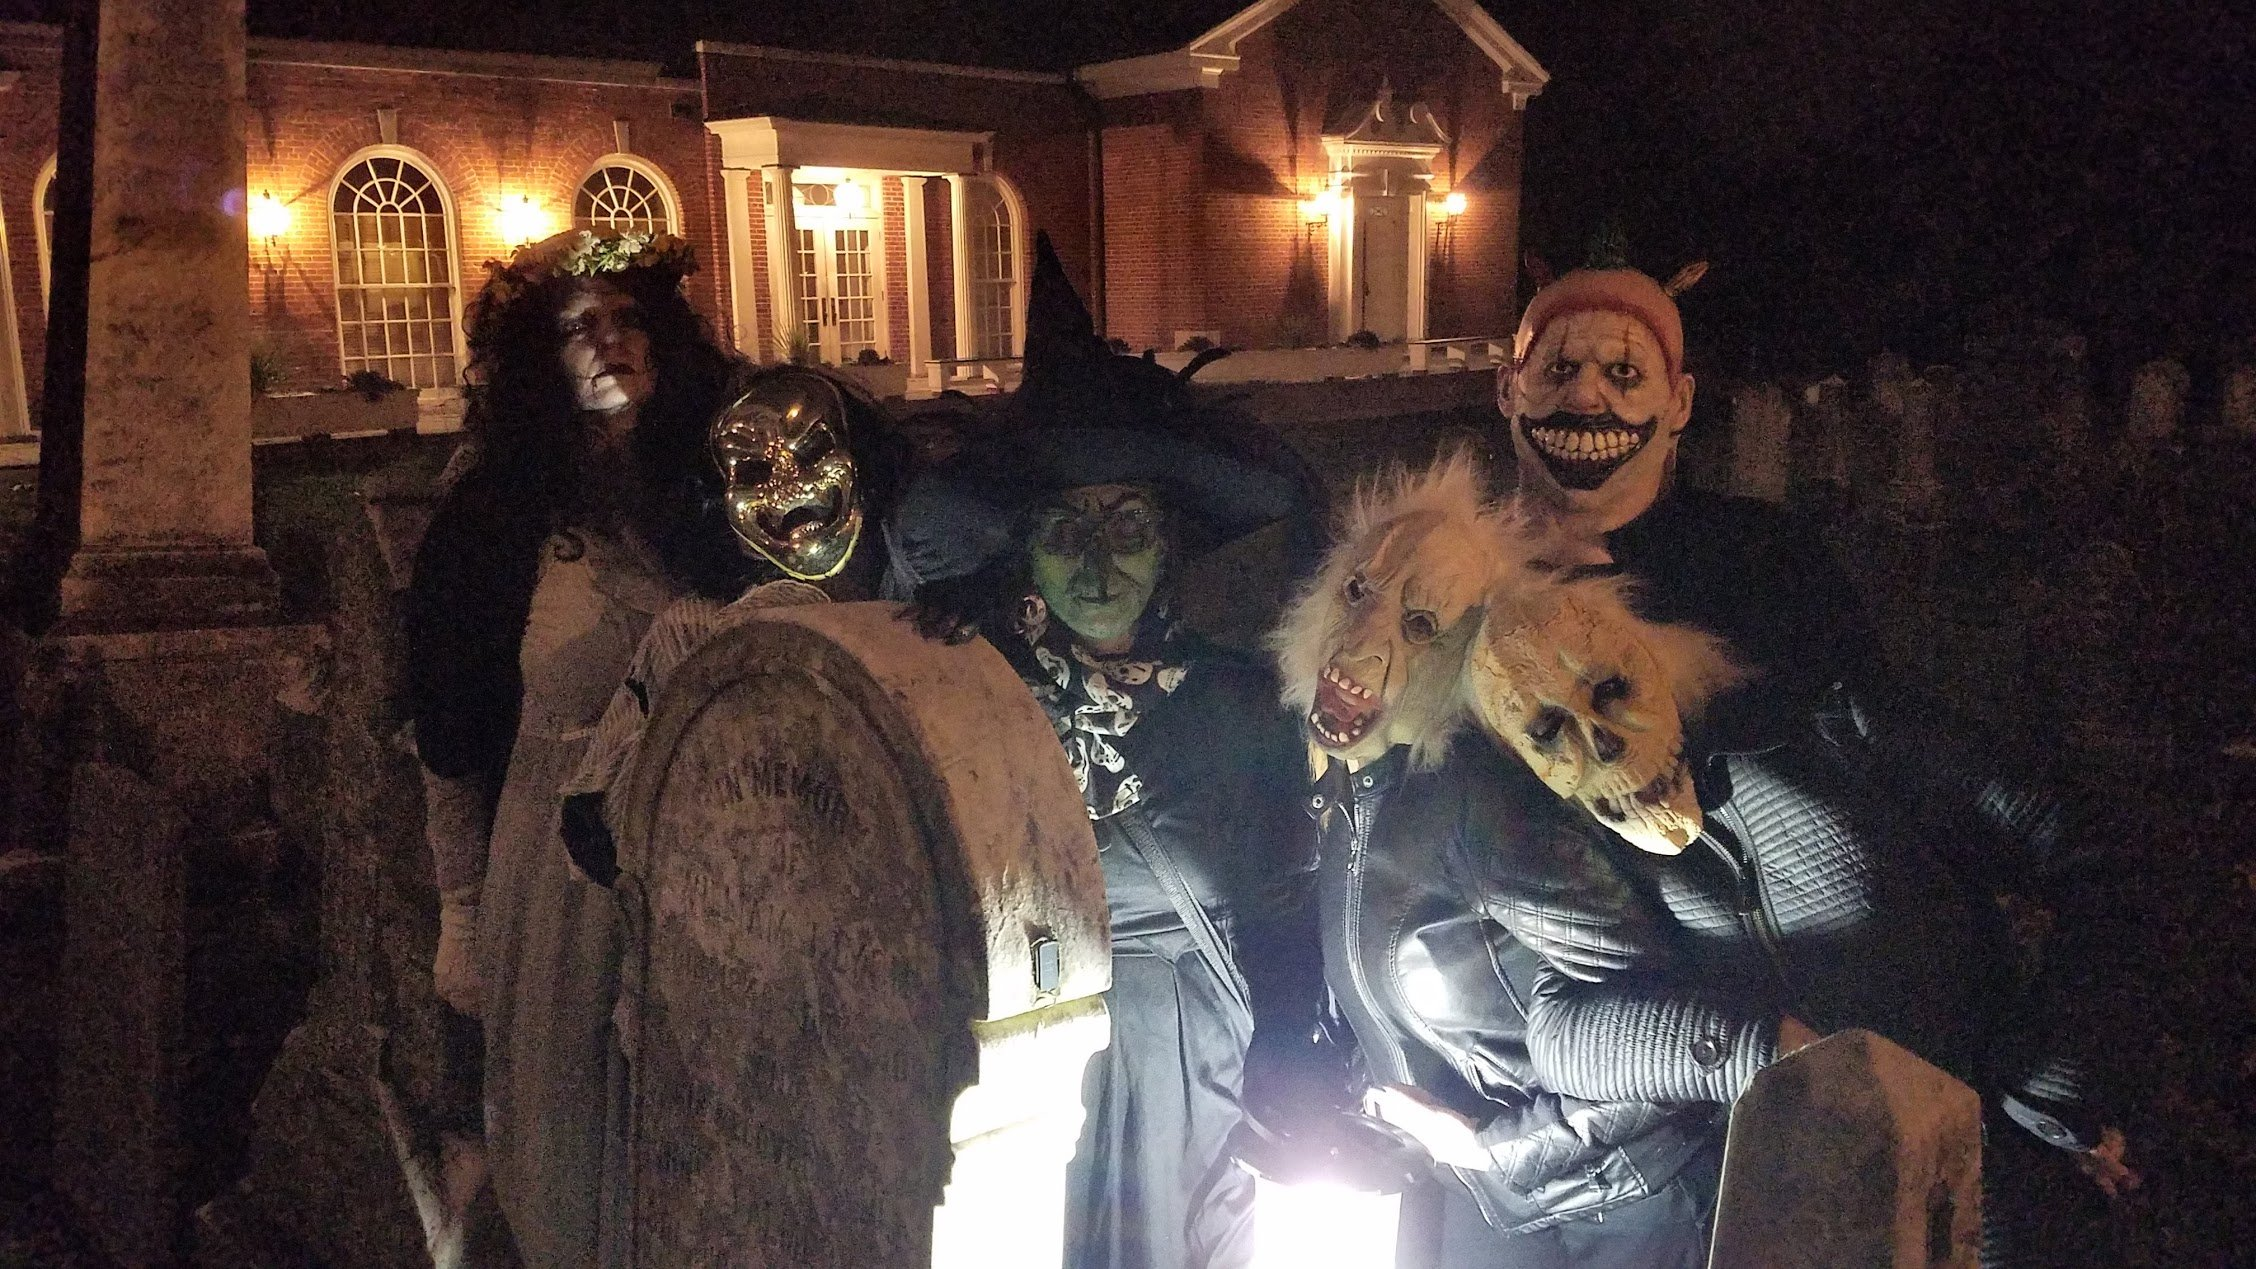 Some of our haunted guests for the Haunted Walking Tour of Basking Ridge